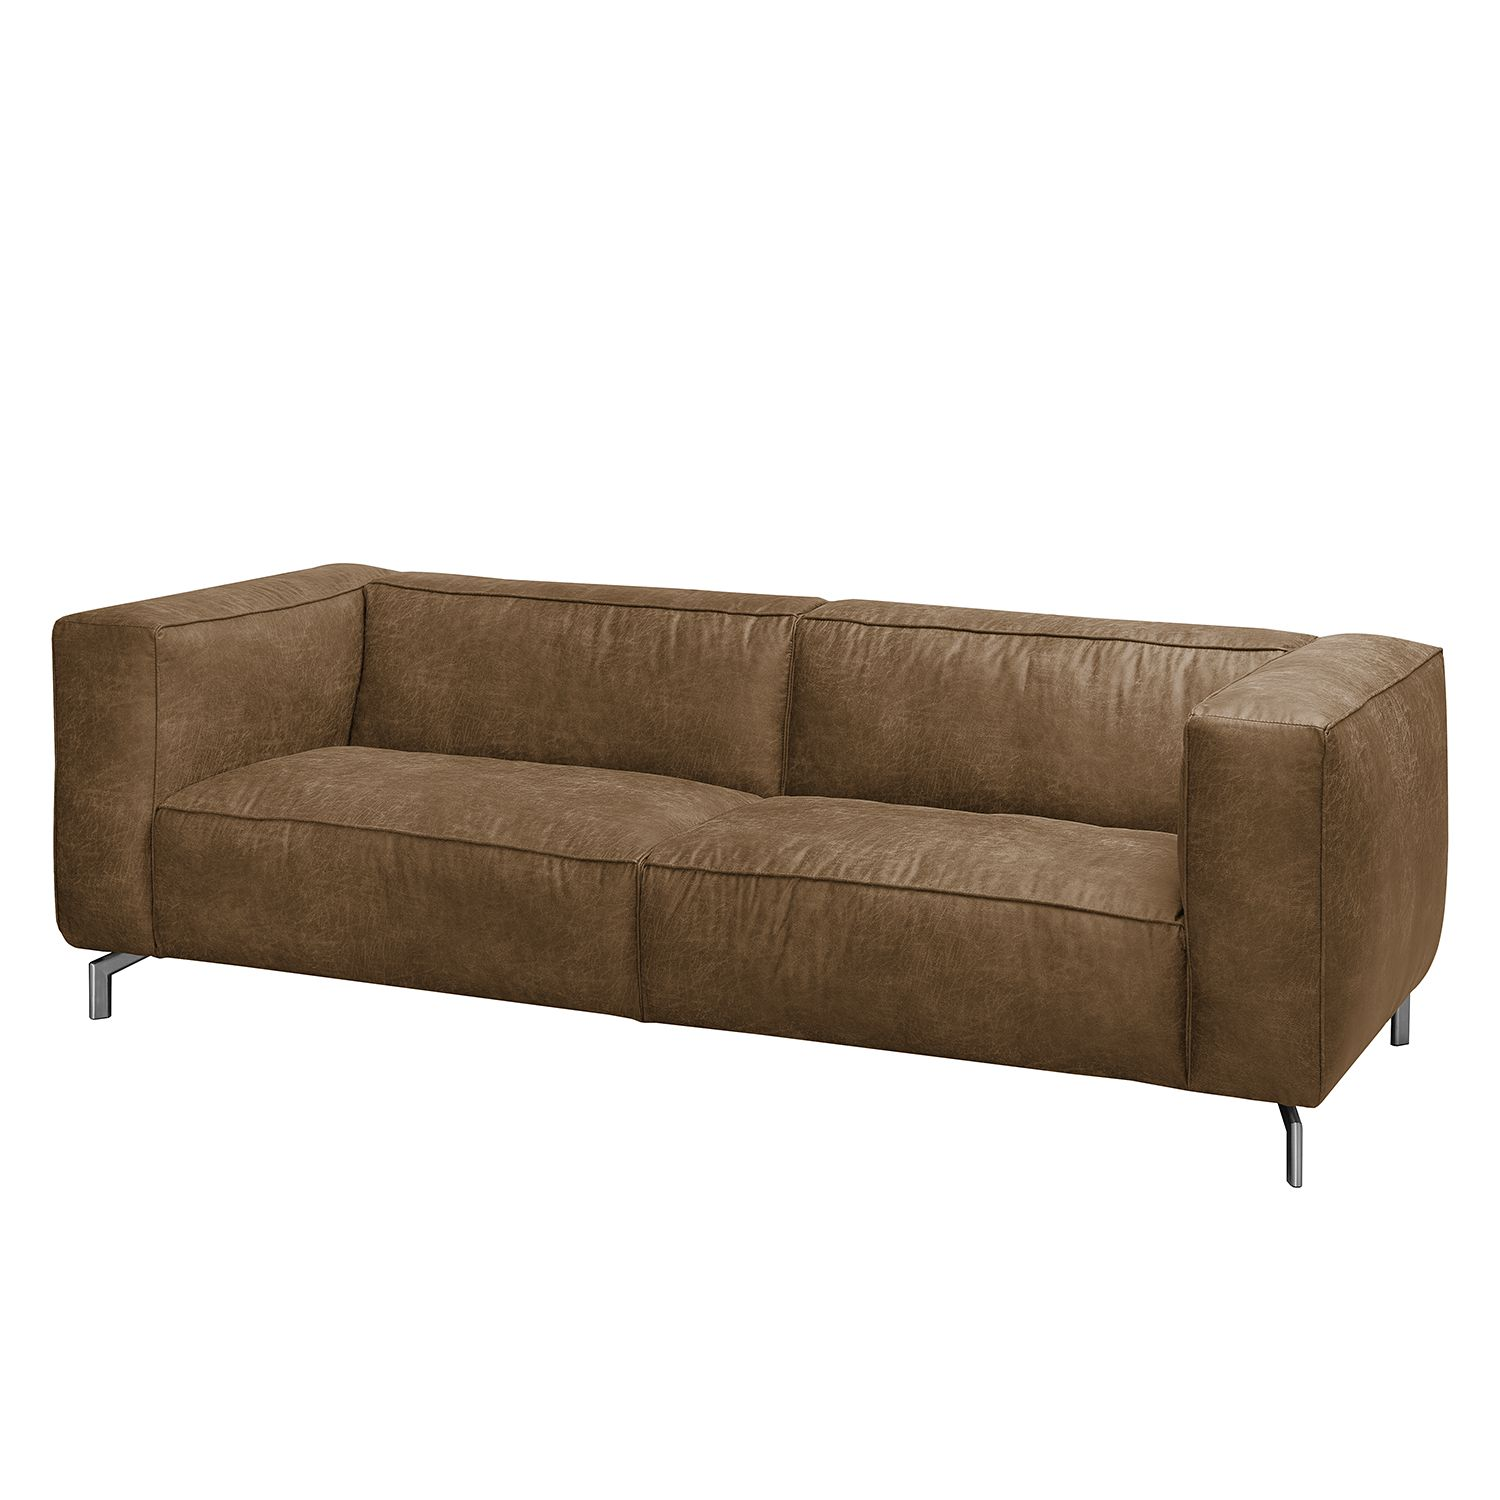 Sofa Pentre (3-Sitzer) - Antiklederlook - Camel, ars manufacti